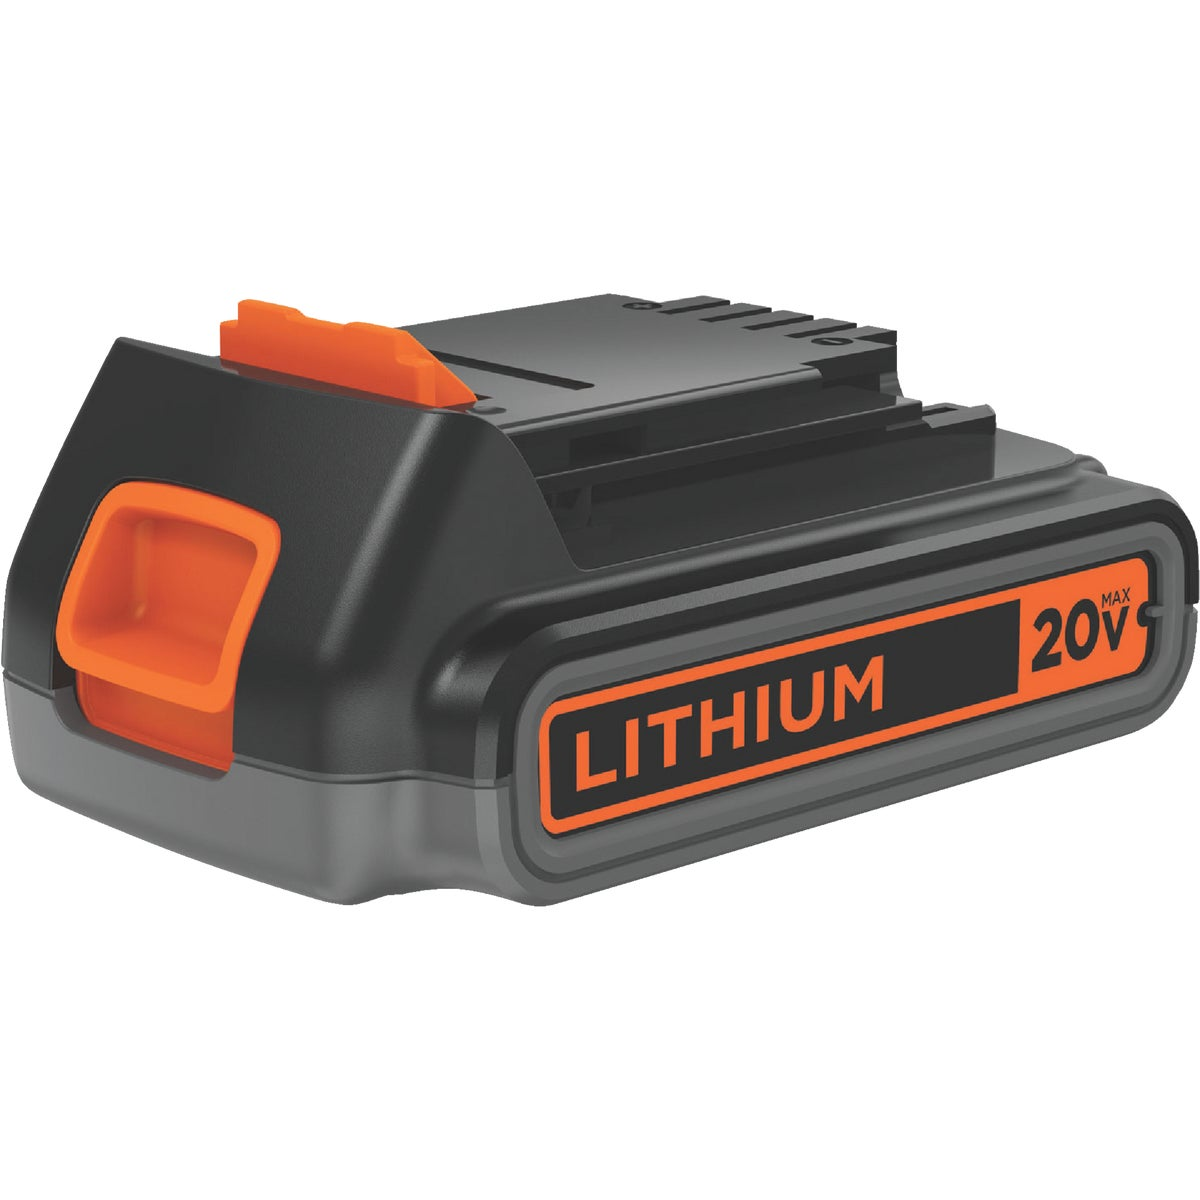 20V LITHIUM ION BATTERY - LBXR2020-OPE by Black & Decker